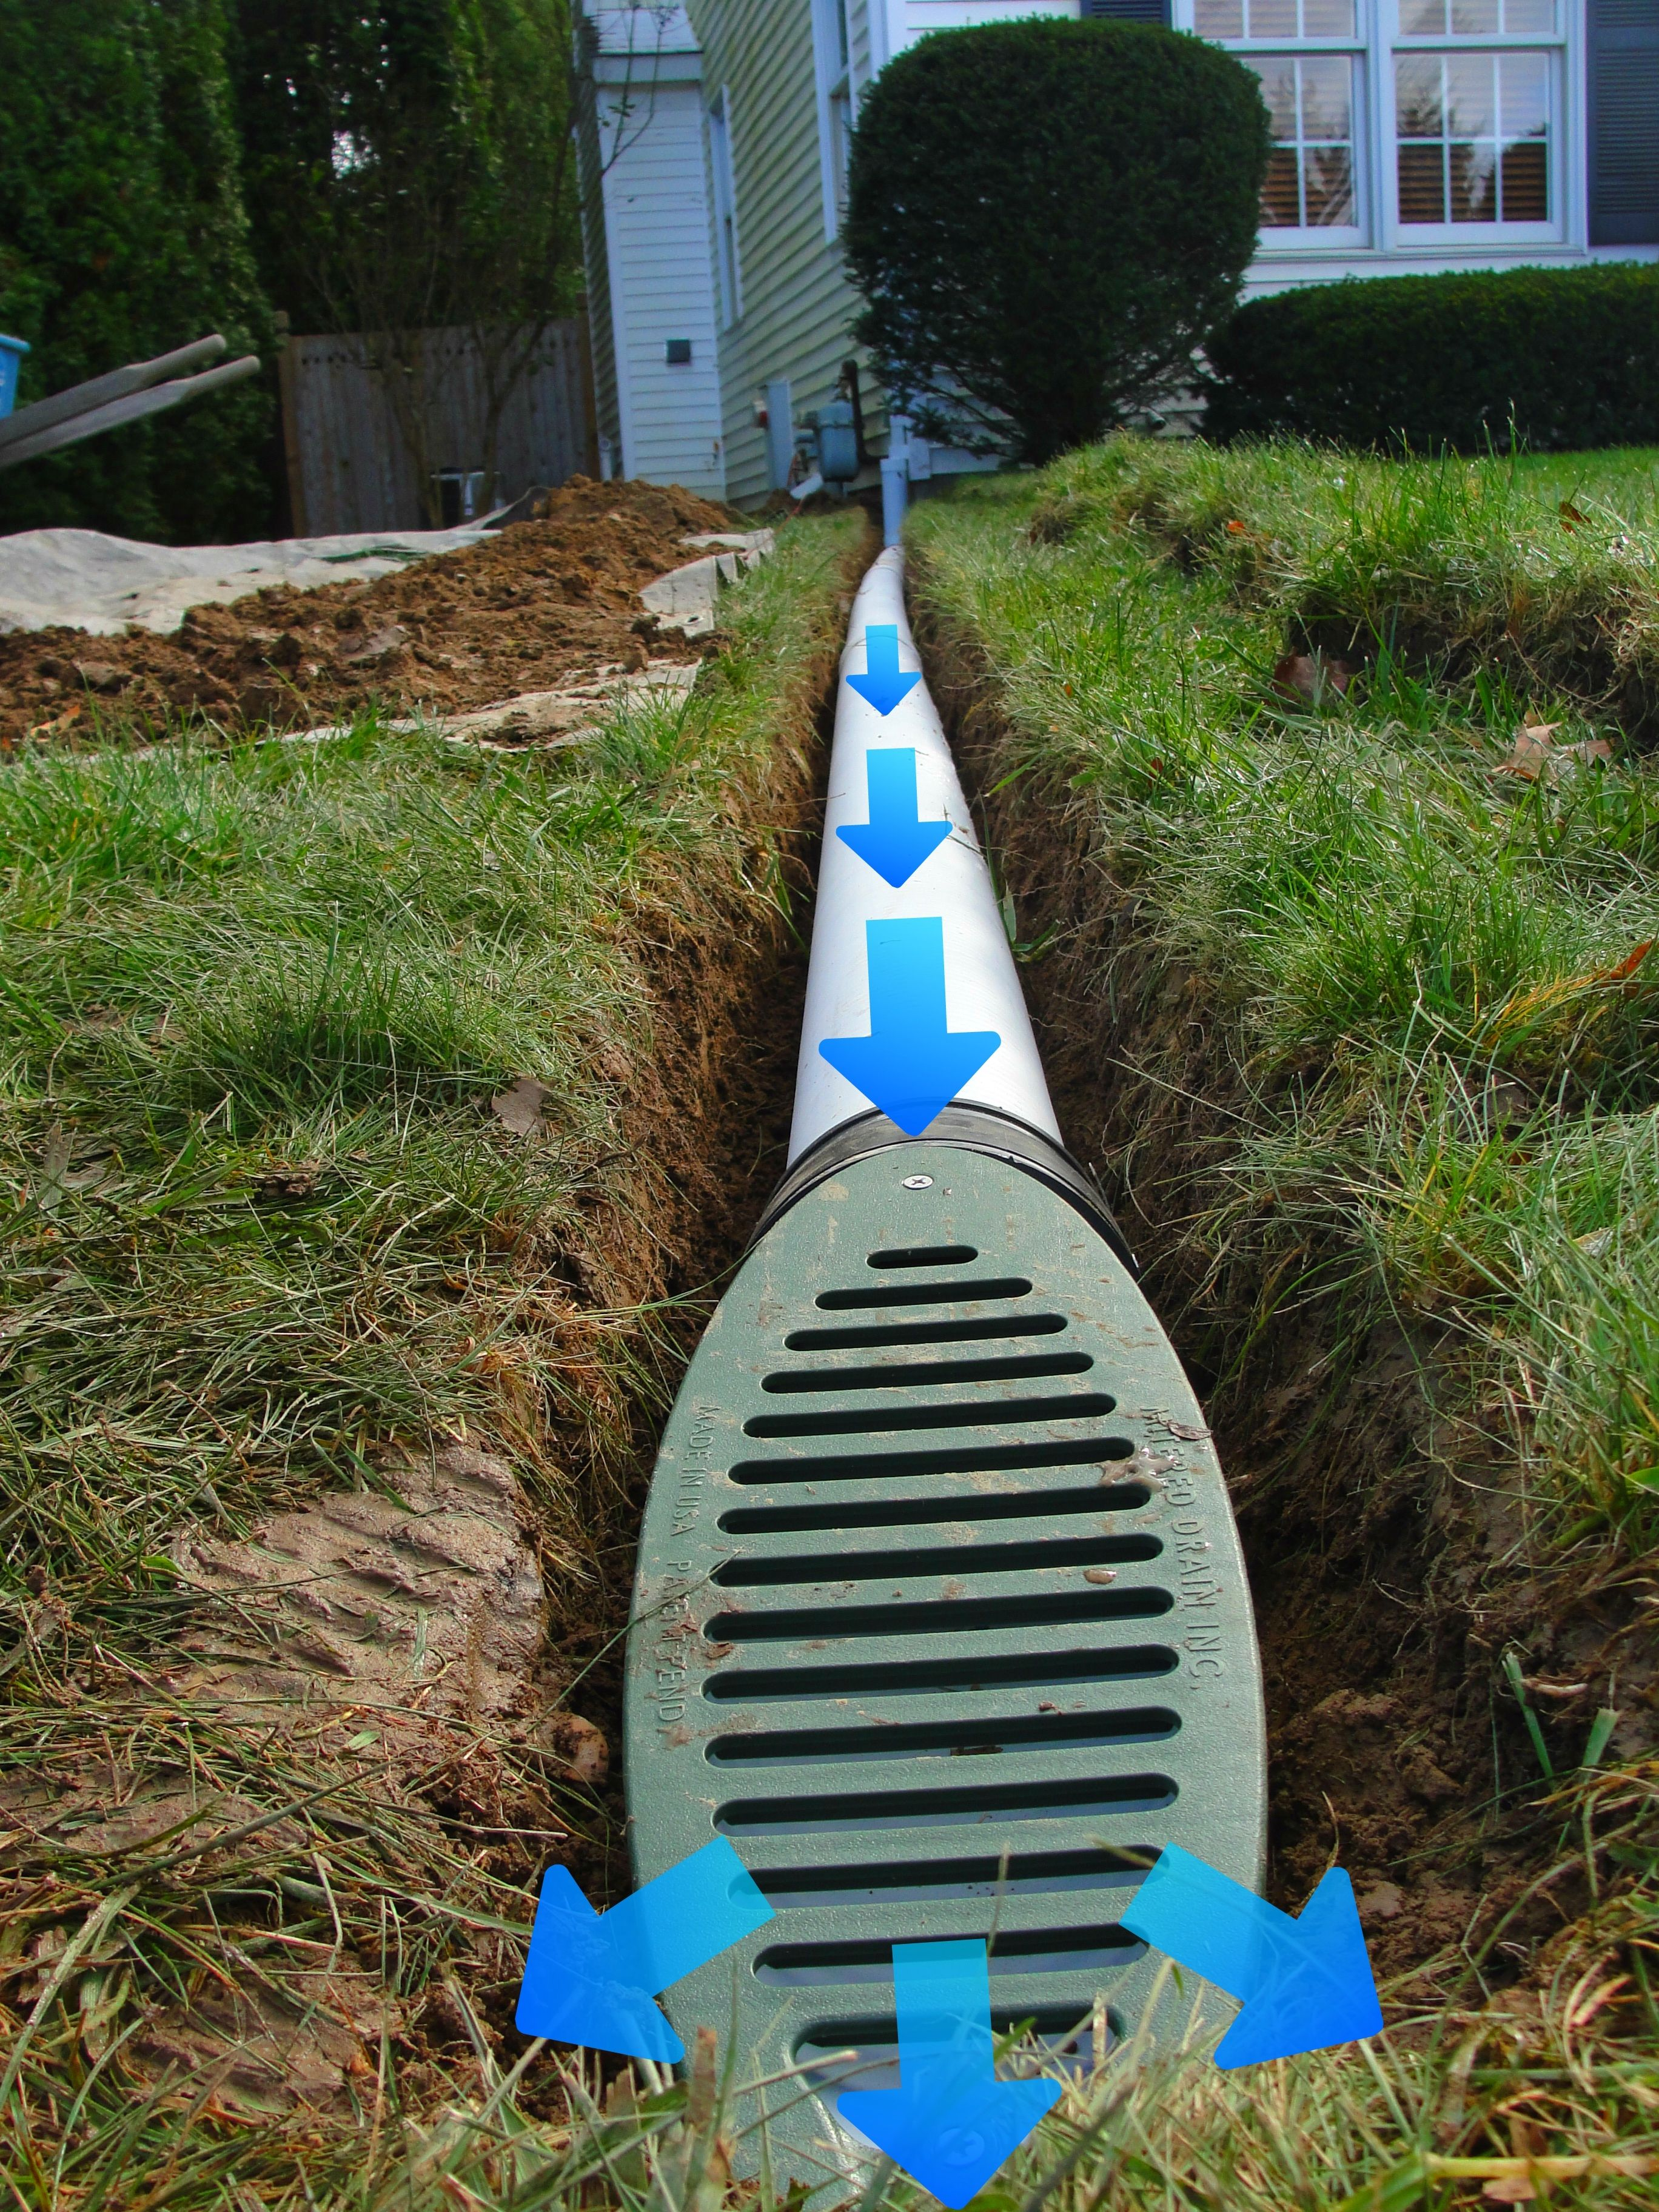 Foundation Drainage And Waterproofing Repair Solutions Draining Gutter Roof Water Away From Home Backyard Drainage Landscape Drainage Drainage Solutions